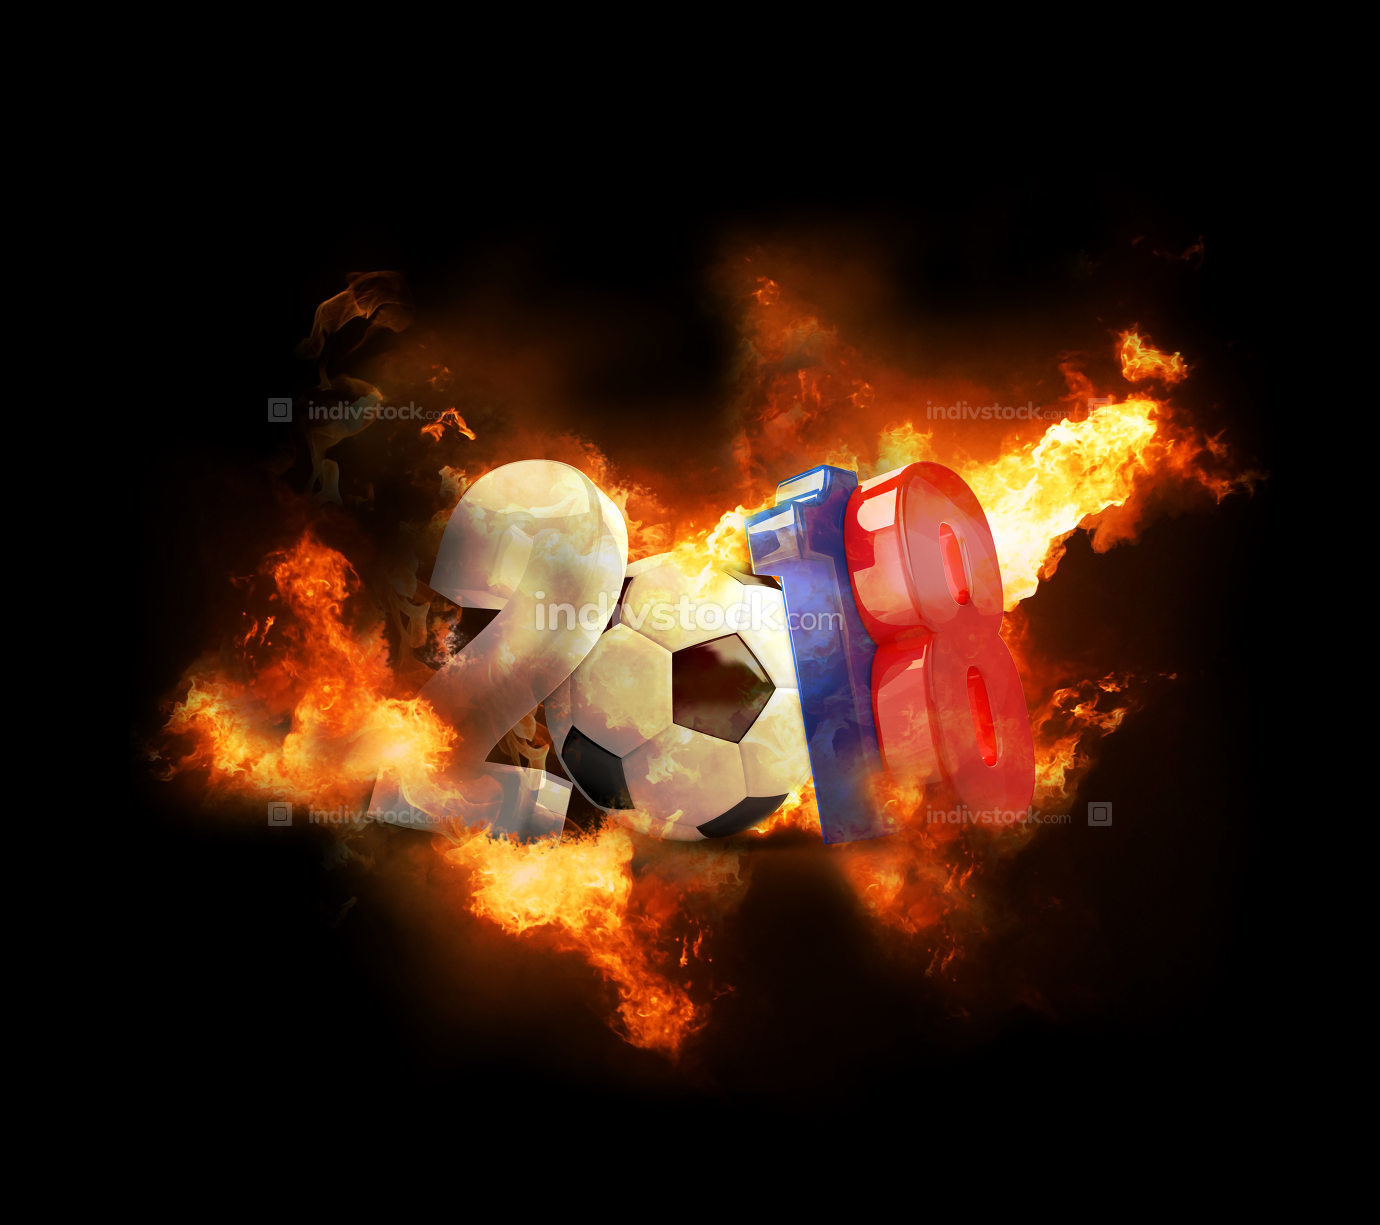 2018 soccer football 3d rendering symbol with fire and flames